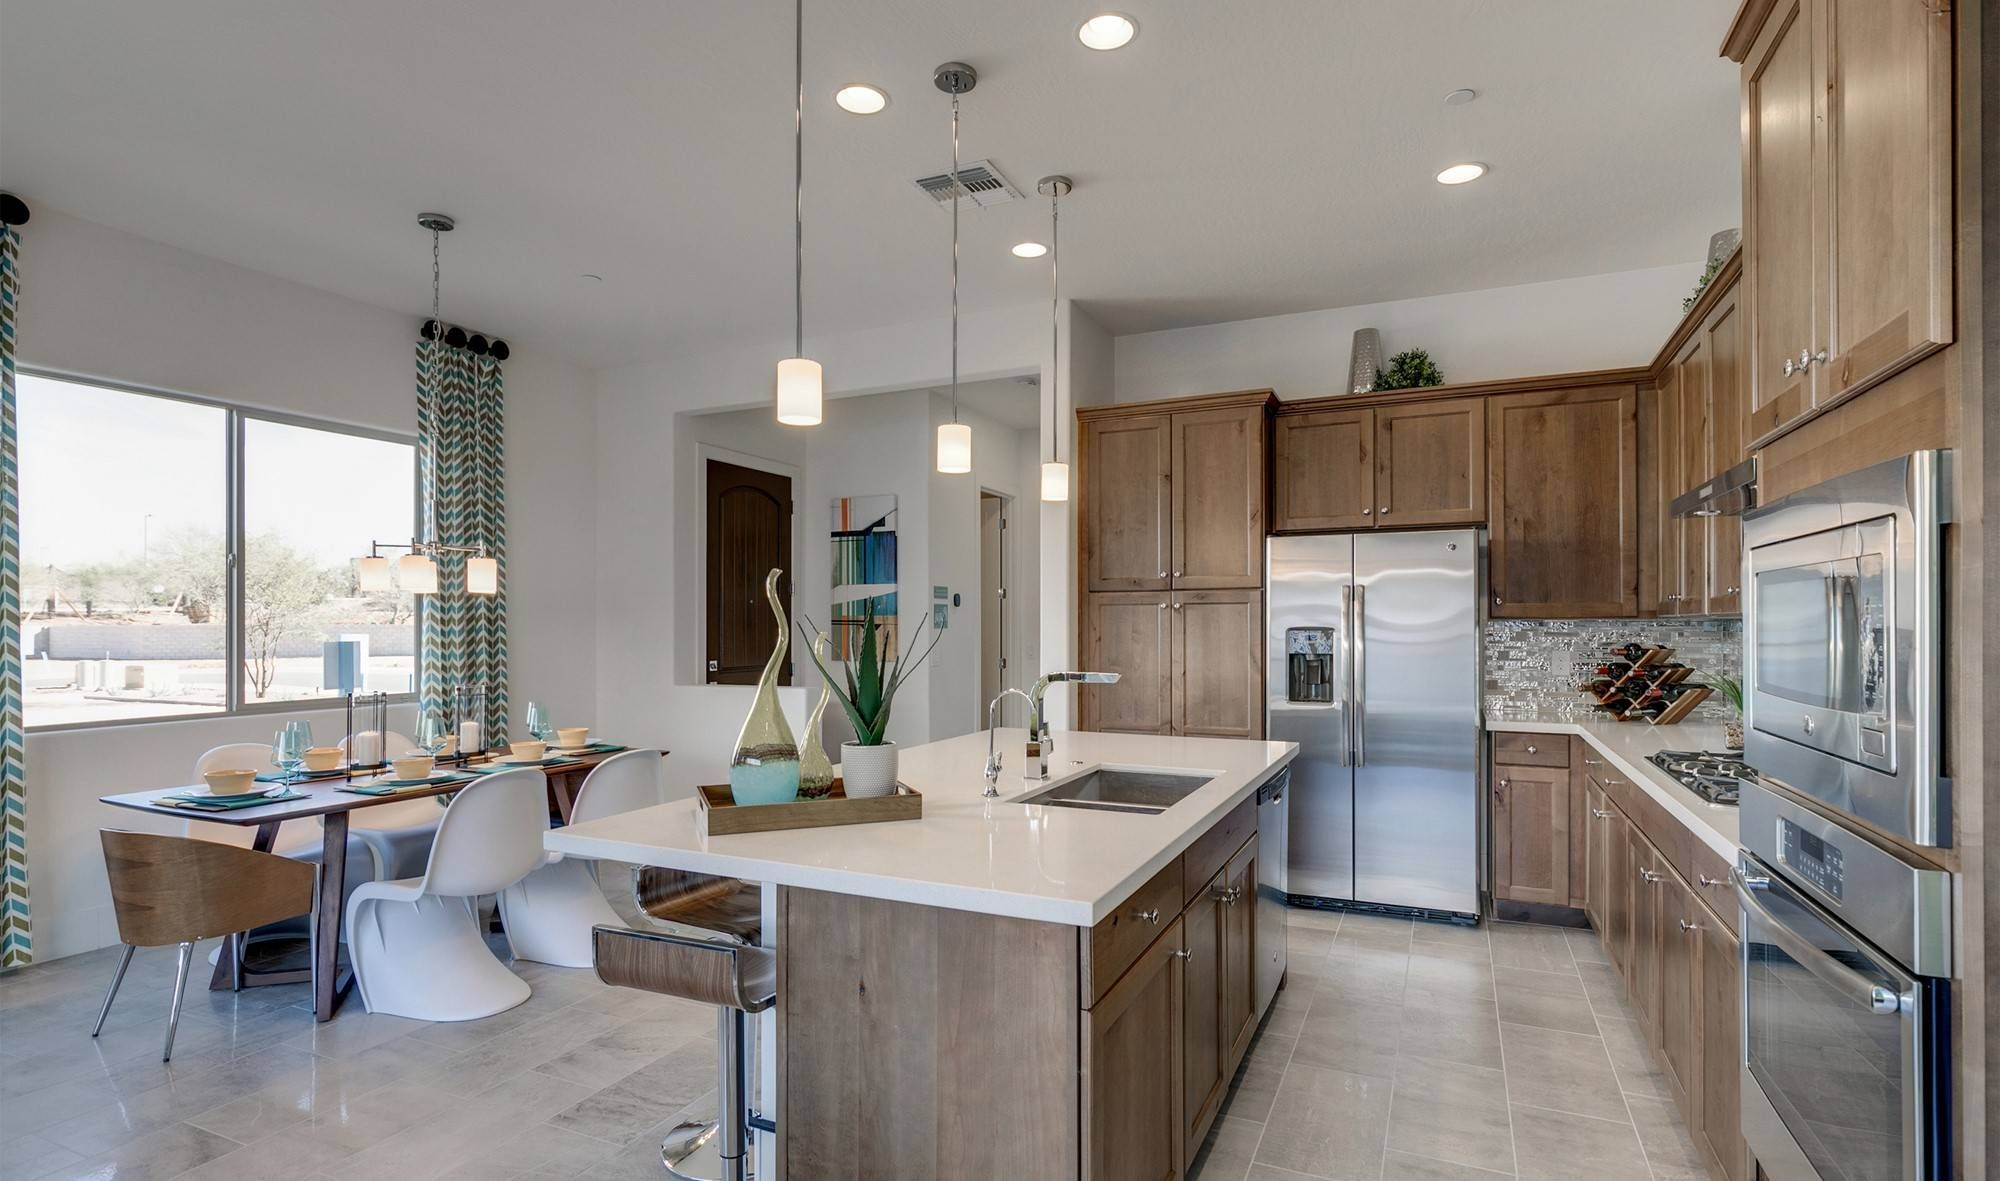 Pinnacle Ii At Silverstone By K Hovnanian Homes 23380 73rd Way Scottsdale Az 85255 Welcome Home To Luxur Large Kitchen Island Home Kitchens Kitchen Remodel